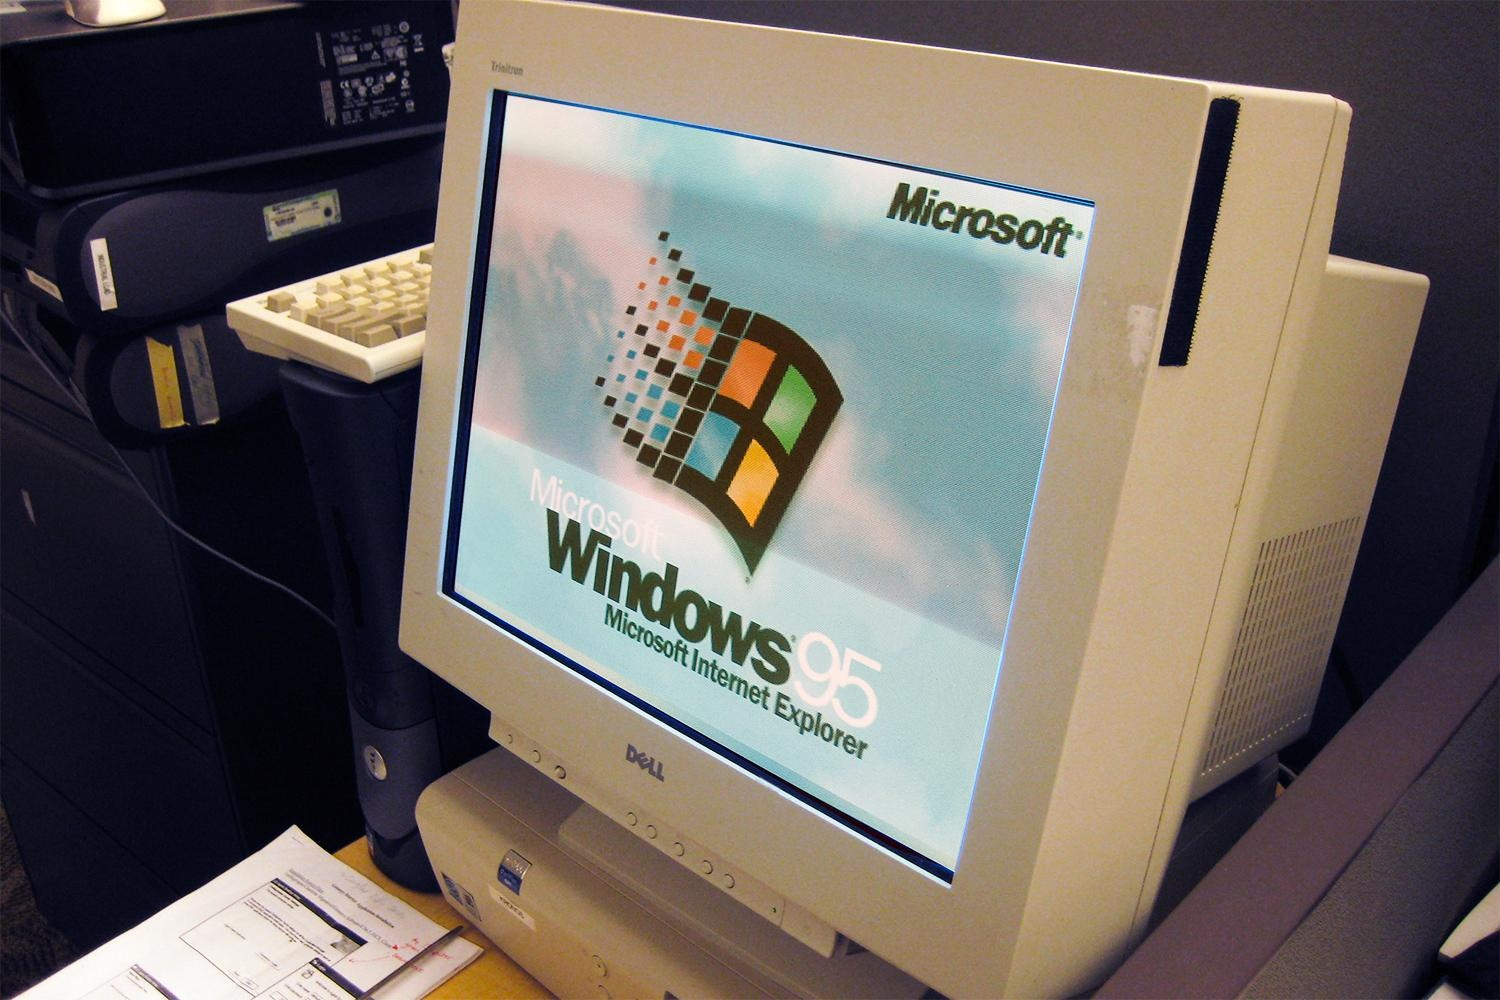 Windows 95 computer